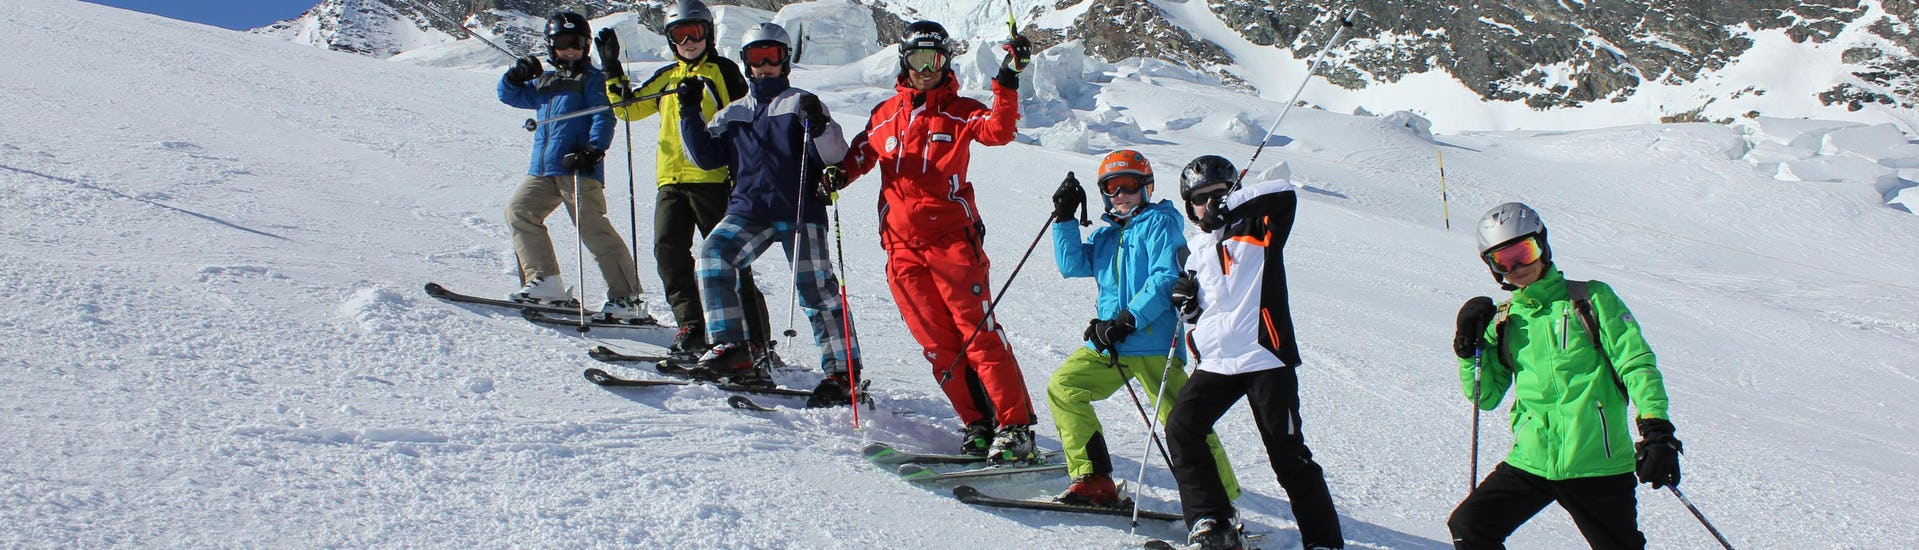 Ski Lessons For Kids & Teens (min 7 years) - All Levels